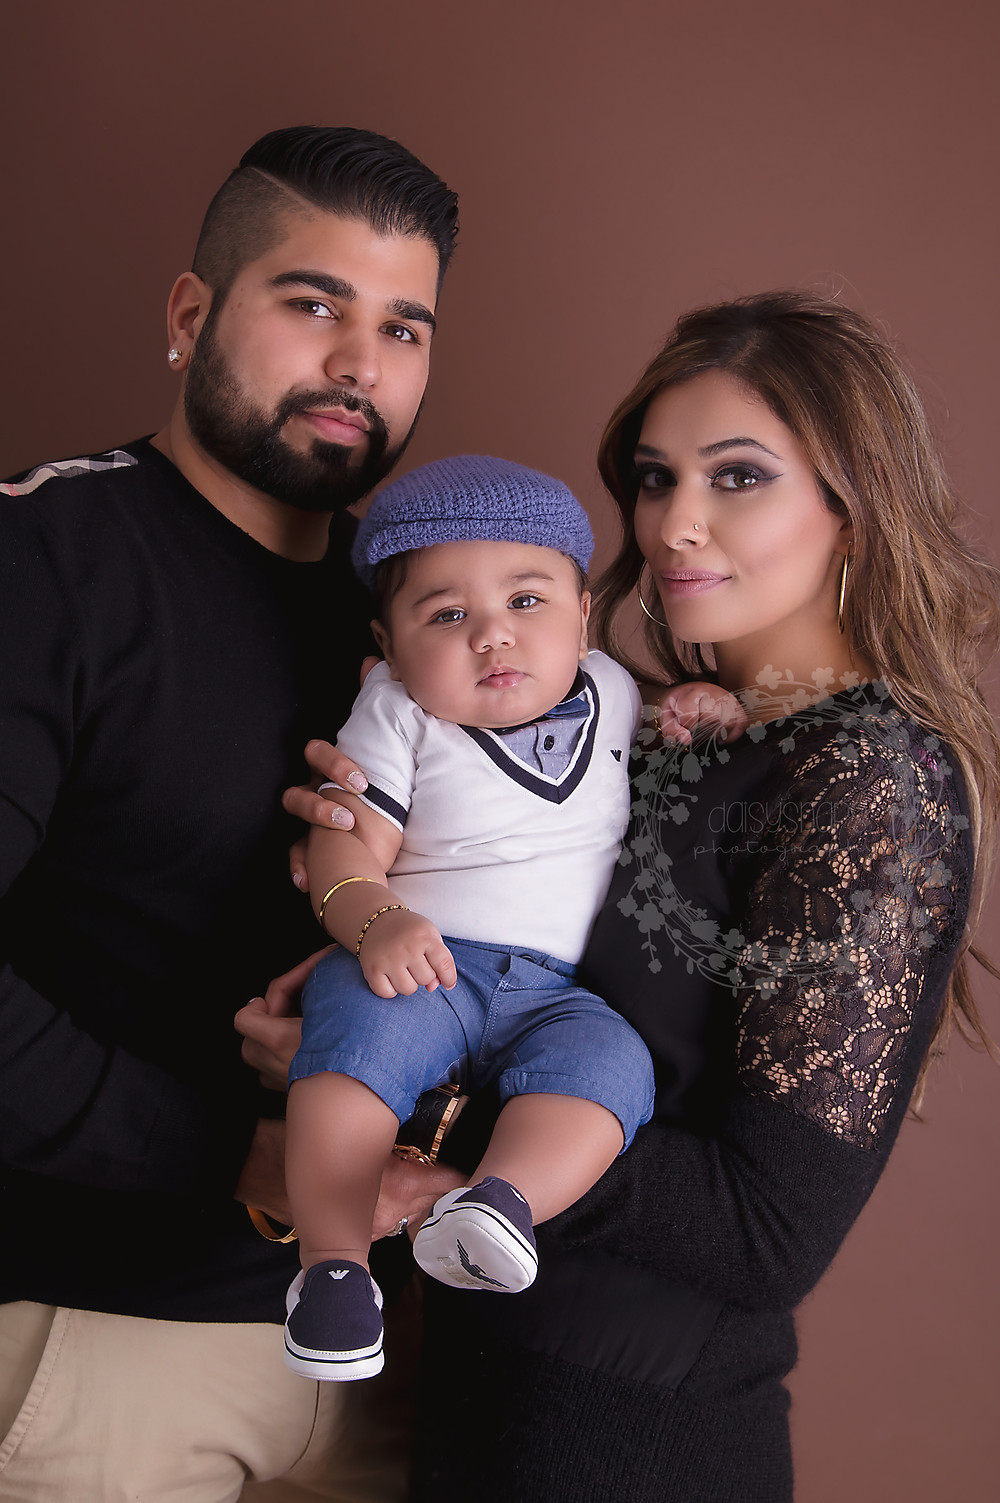 Family portrait with mum and dad holding baby boy during their family photo session